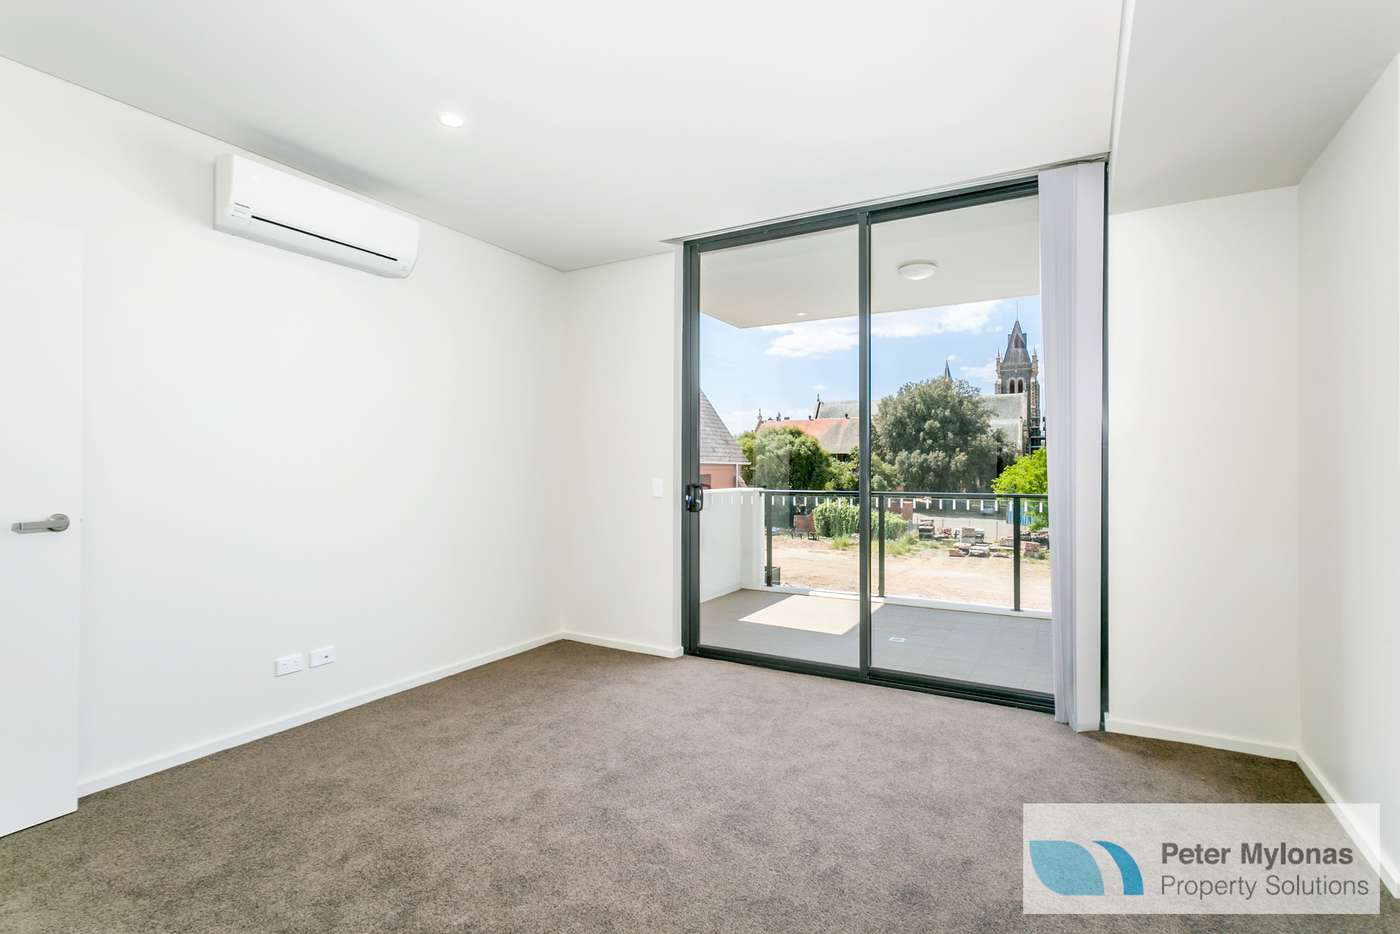 Main view of Homely apartment listing, 16/29 Clinton Street, Goulburn NSW 2580